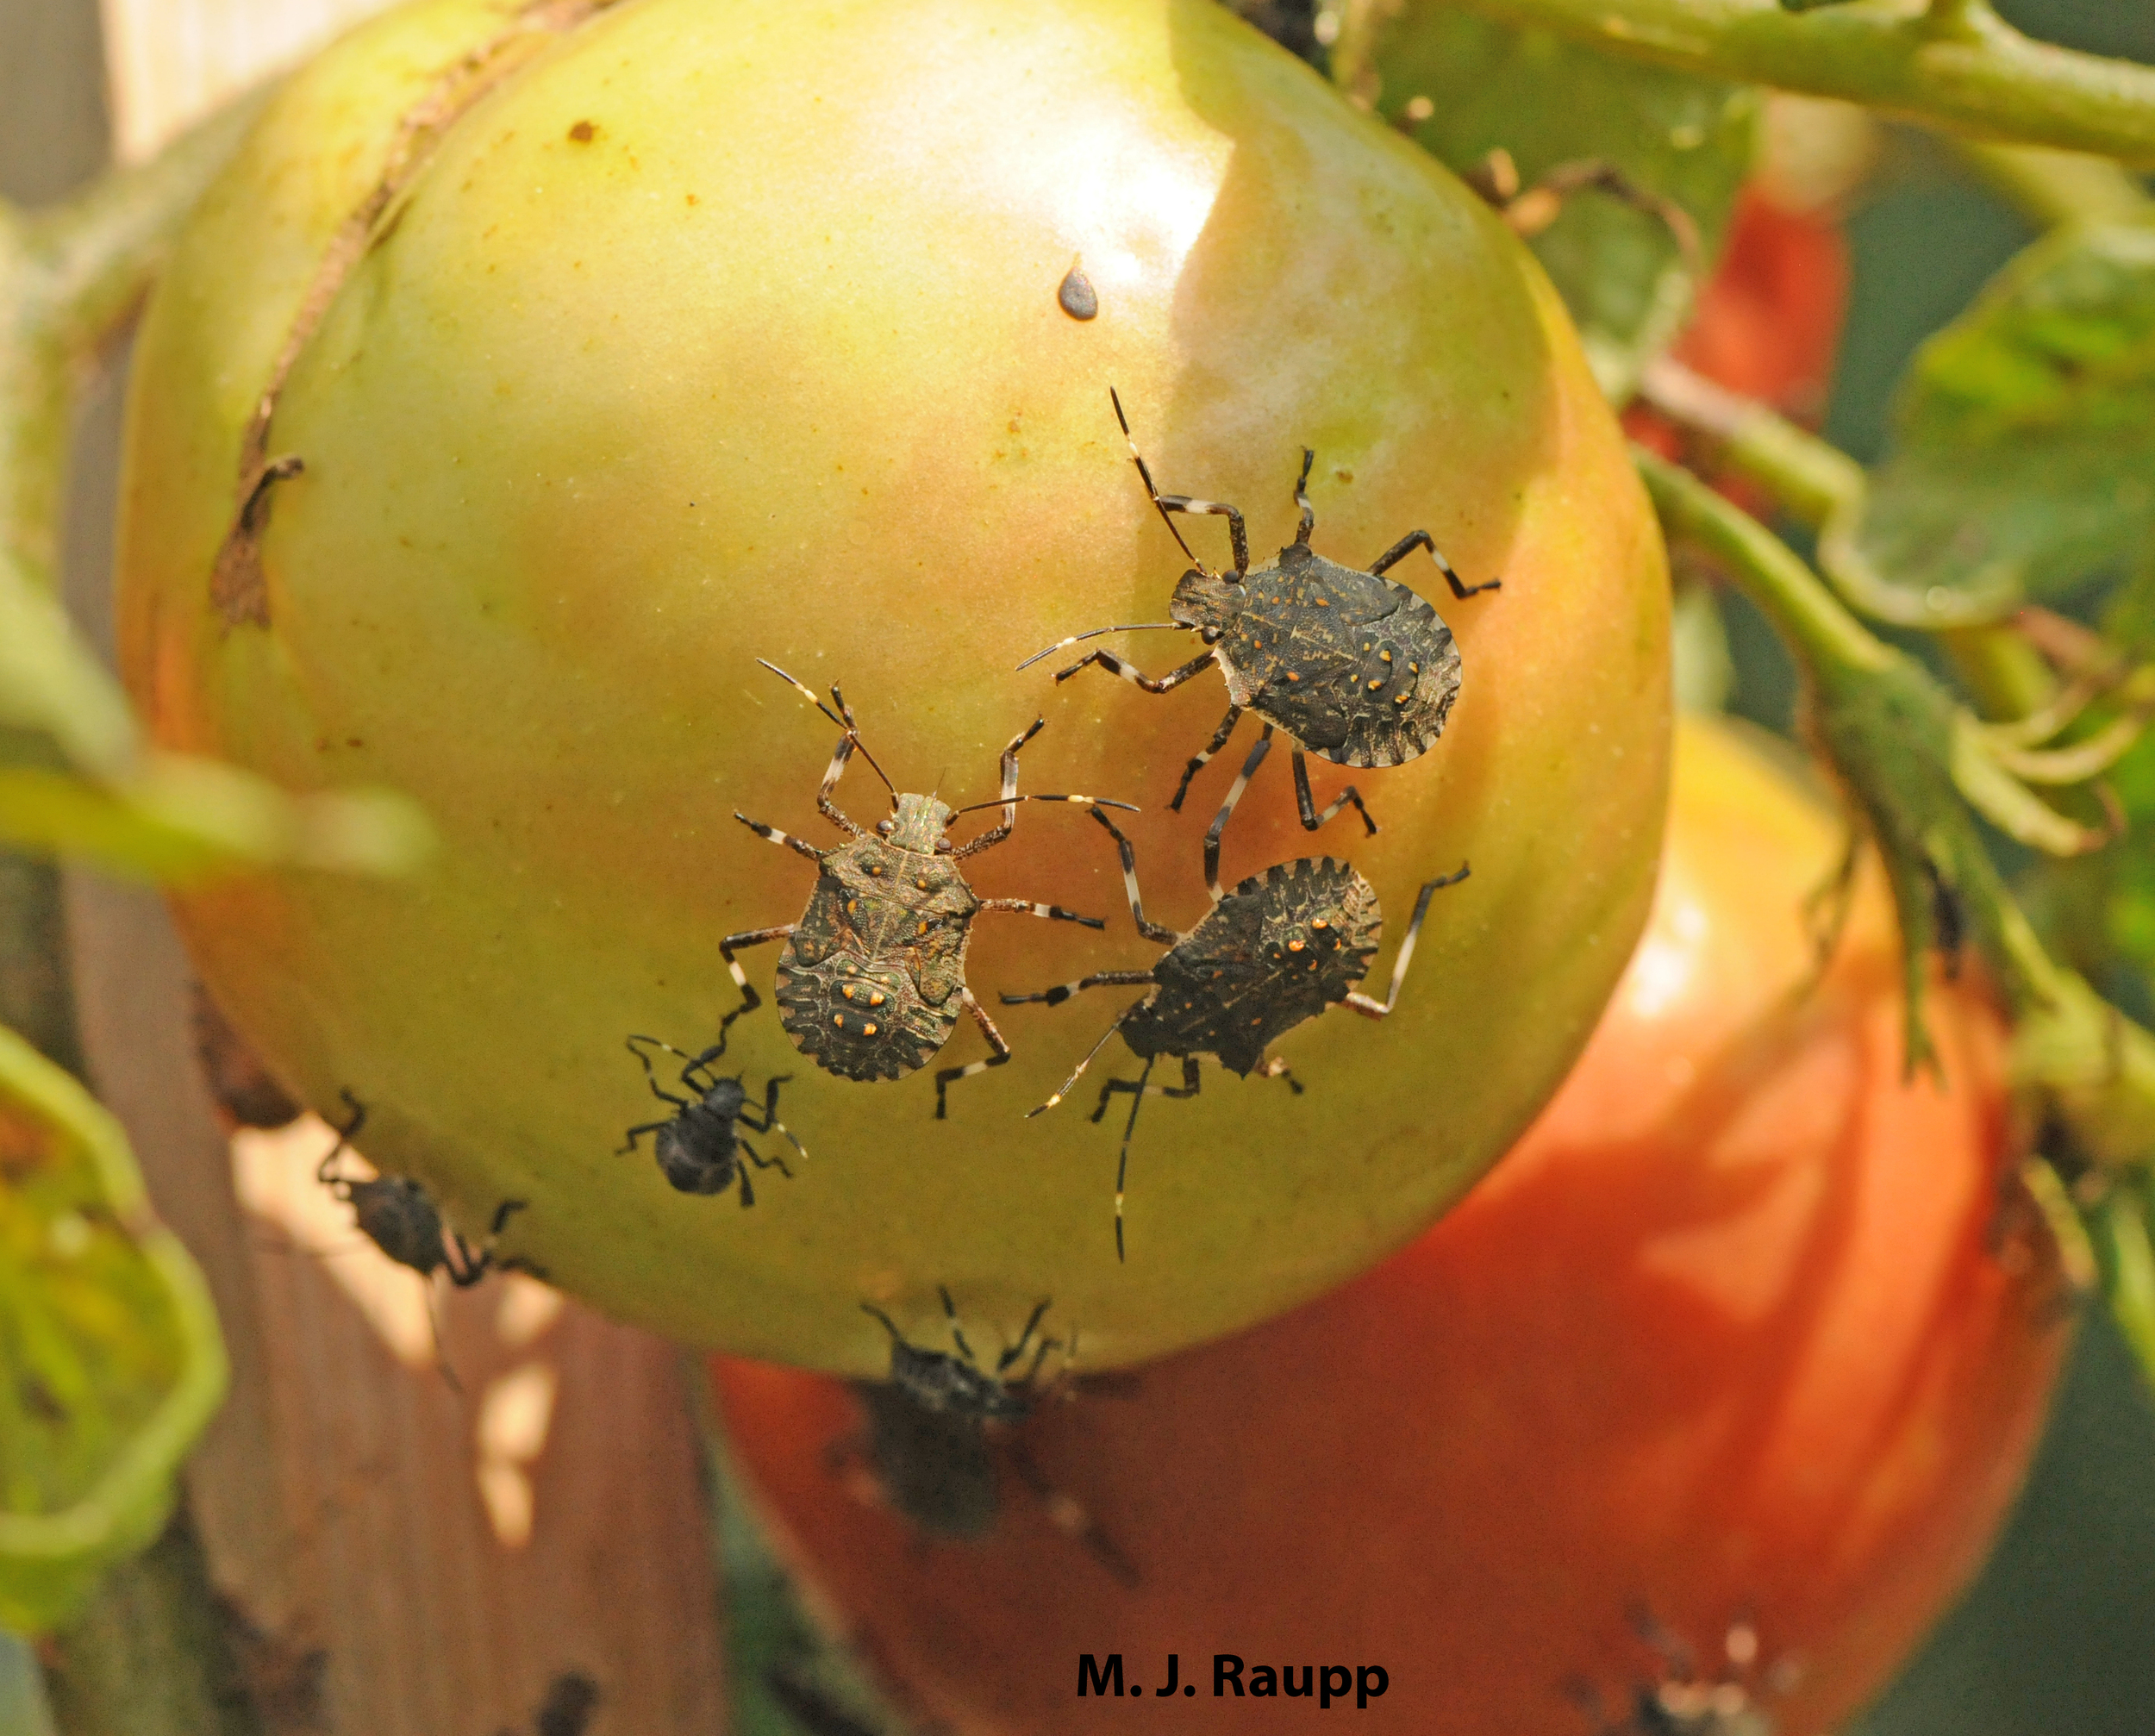 Brown marmorated stink bugs aren't shy about helping themselves to the bounty of your garden.